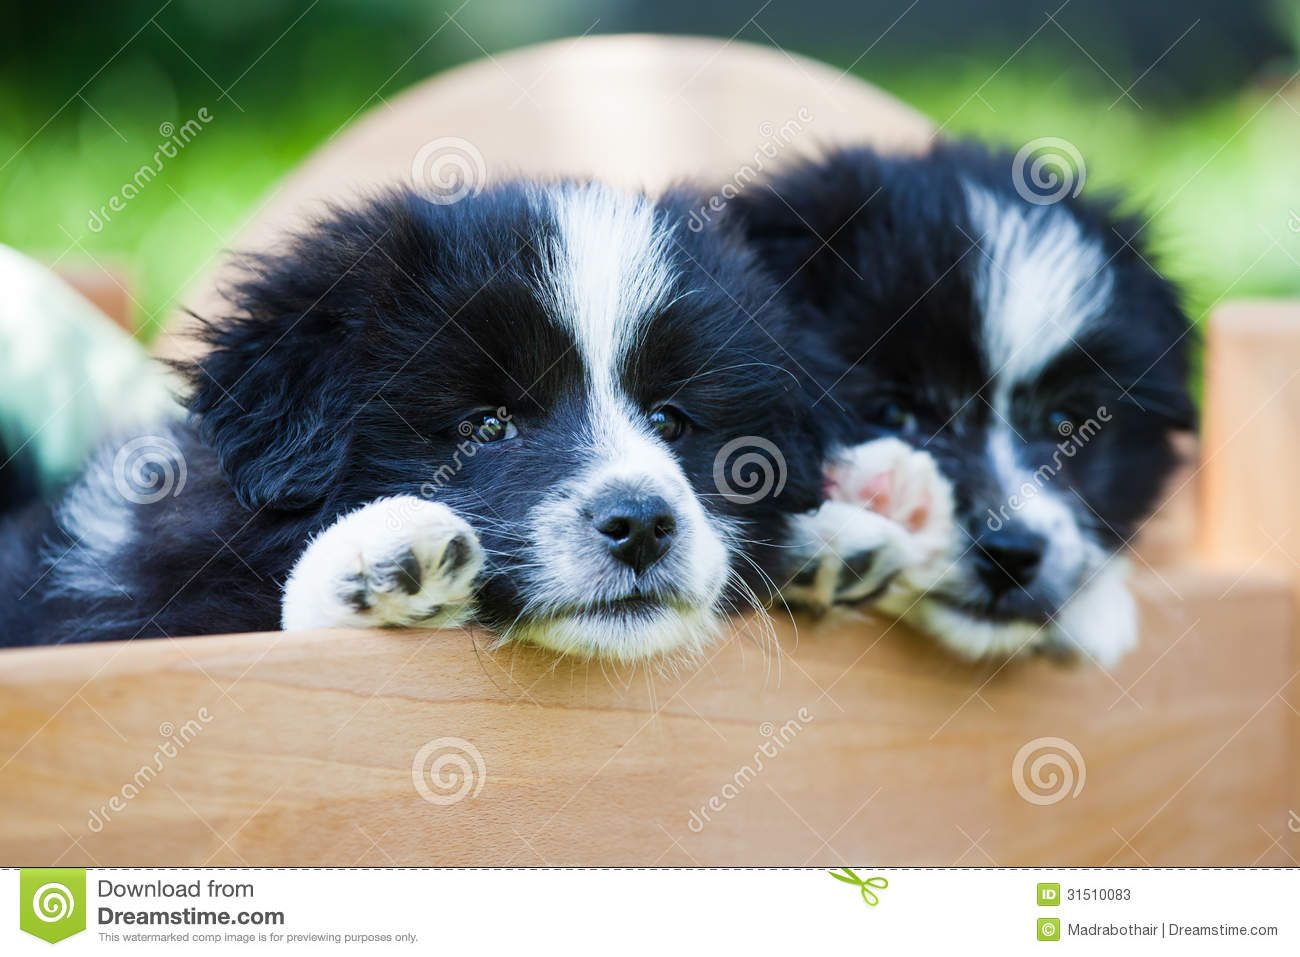 Elo Puppies: Elo Stock S Two Puppies Small Bed Elo German Dog Breed Lying